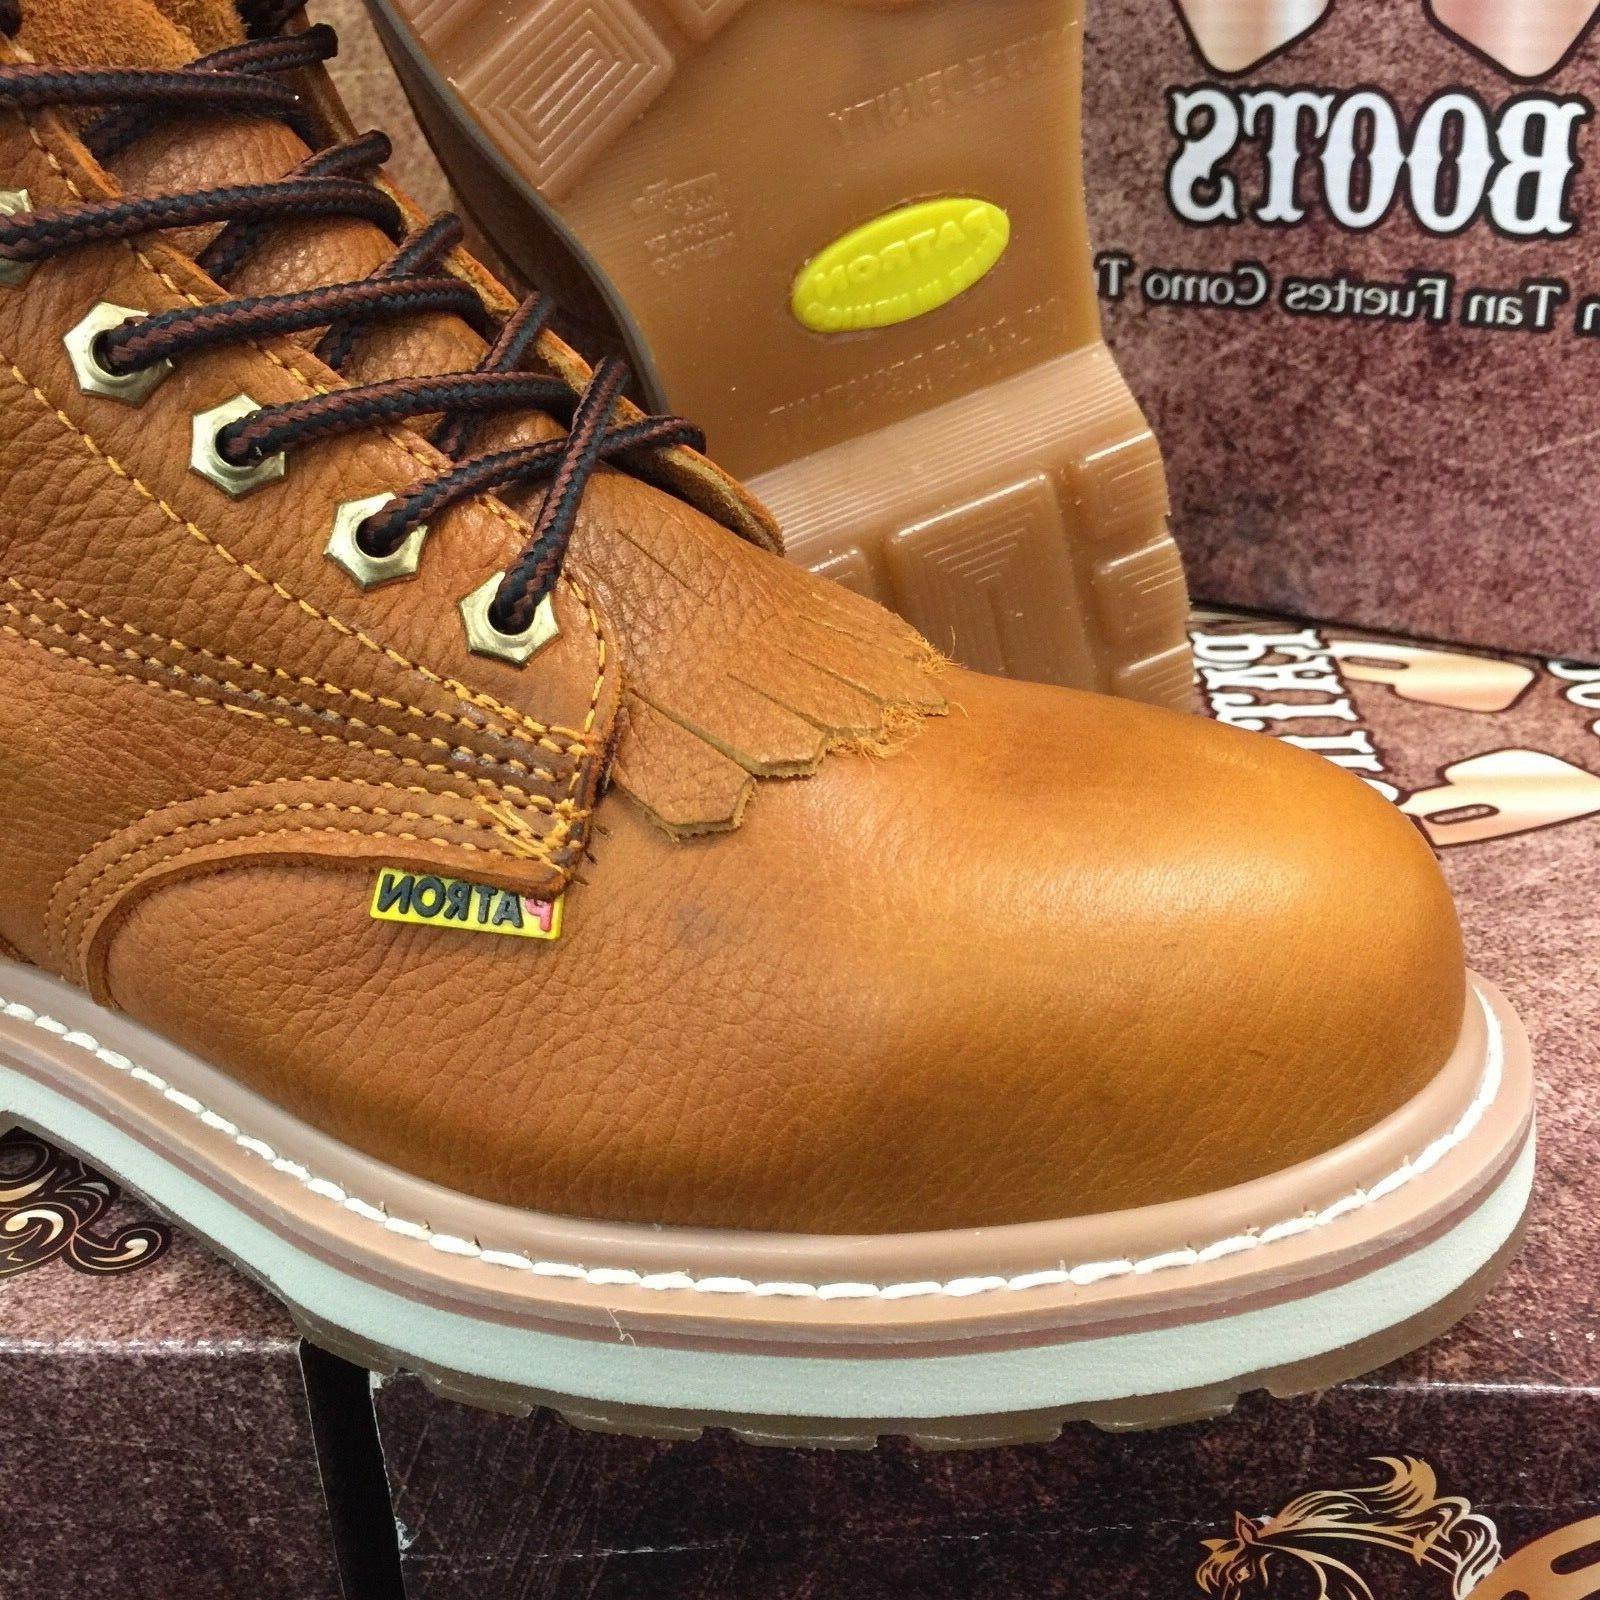 MEN'S BOOTS ROUND SOFT TOE LEATHER LACER UP HONEY BOTAS